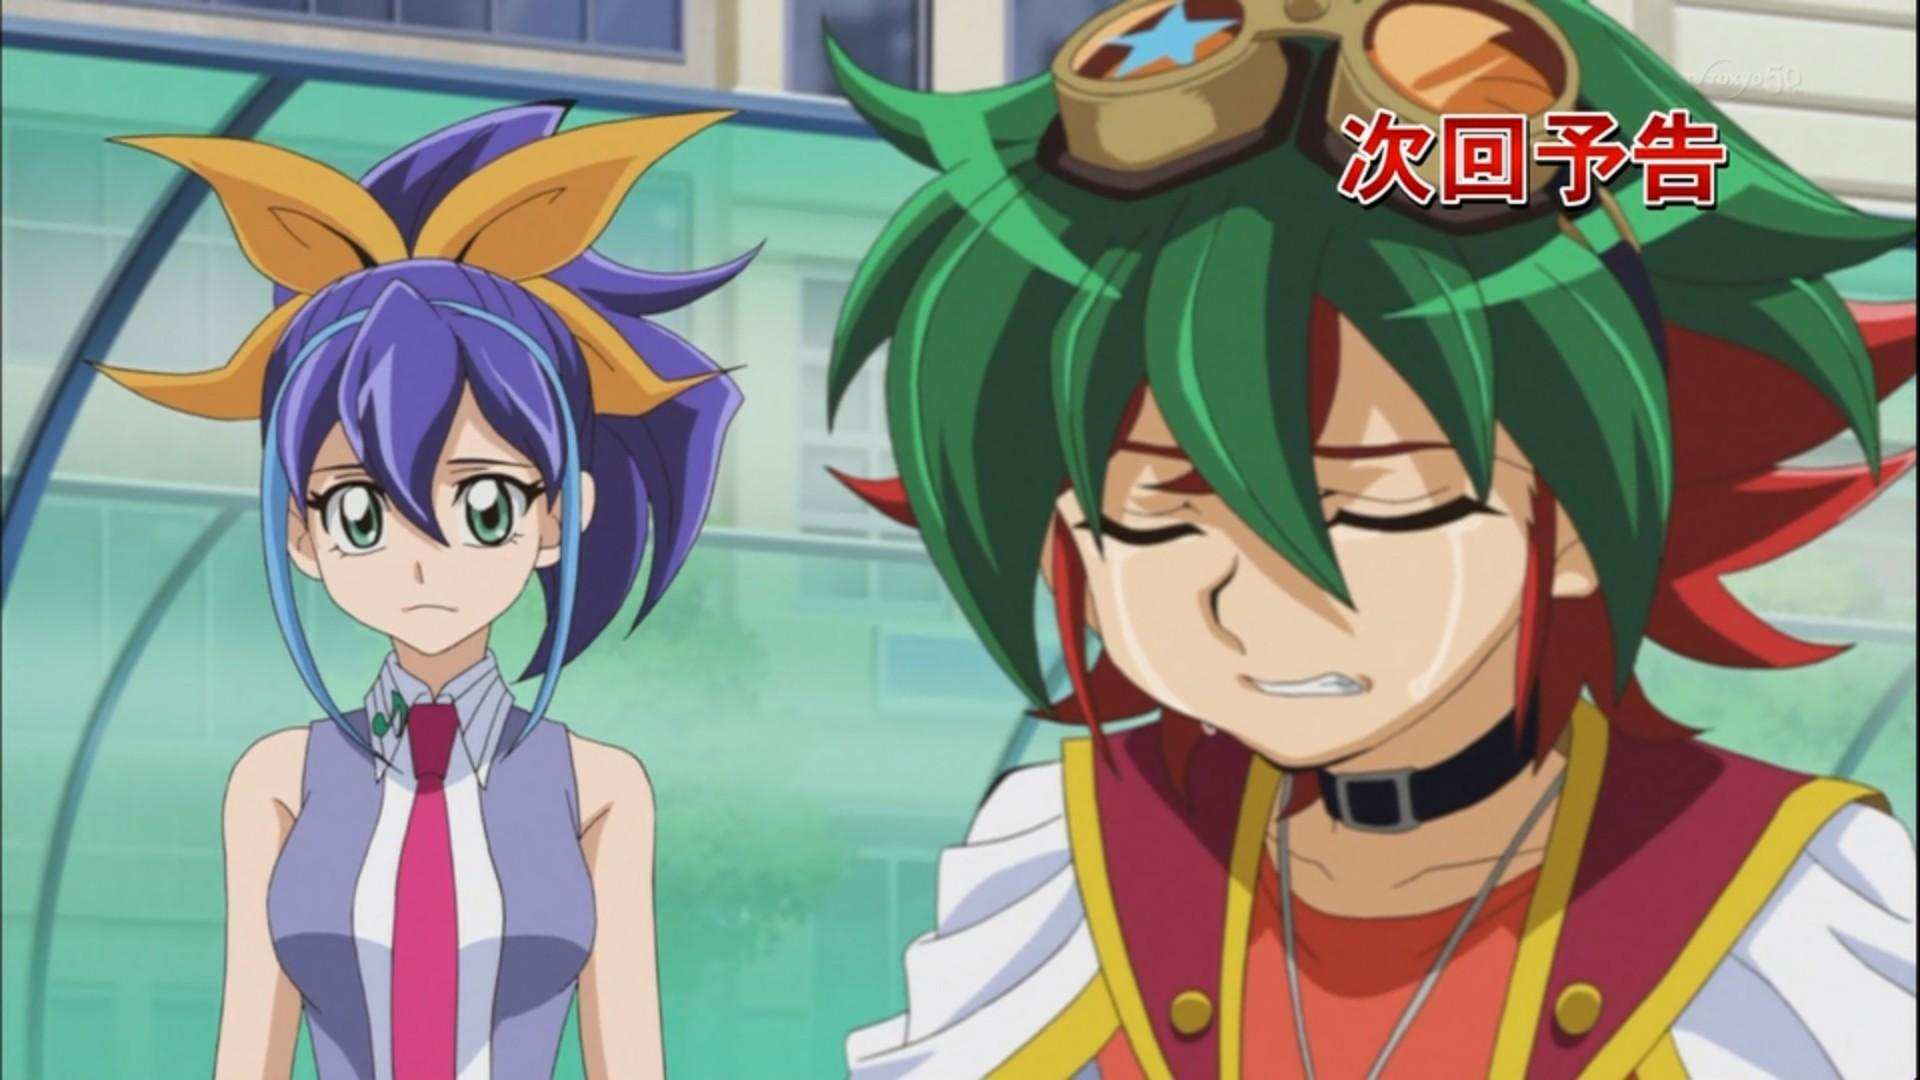 yusei and akiza relationship tips